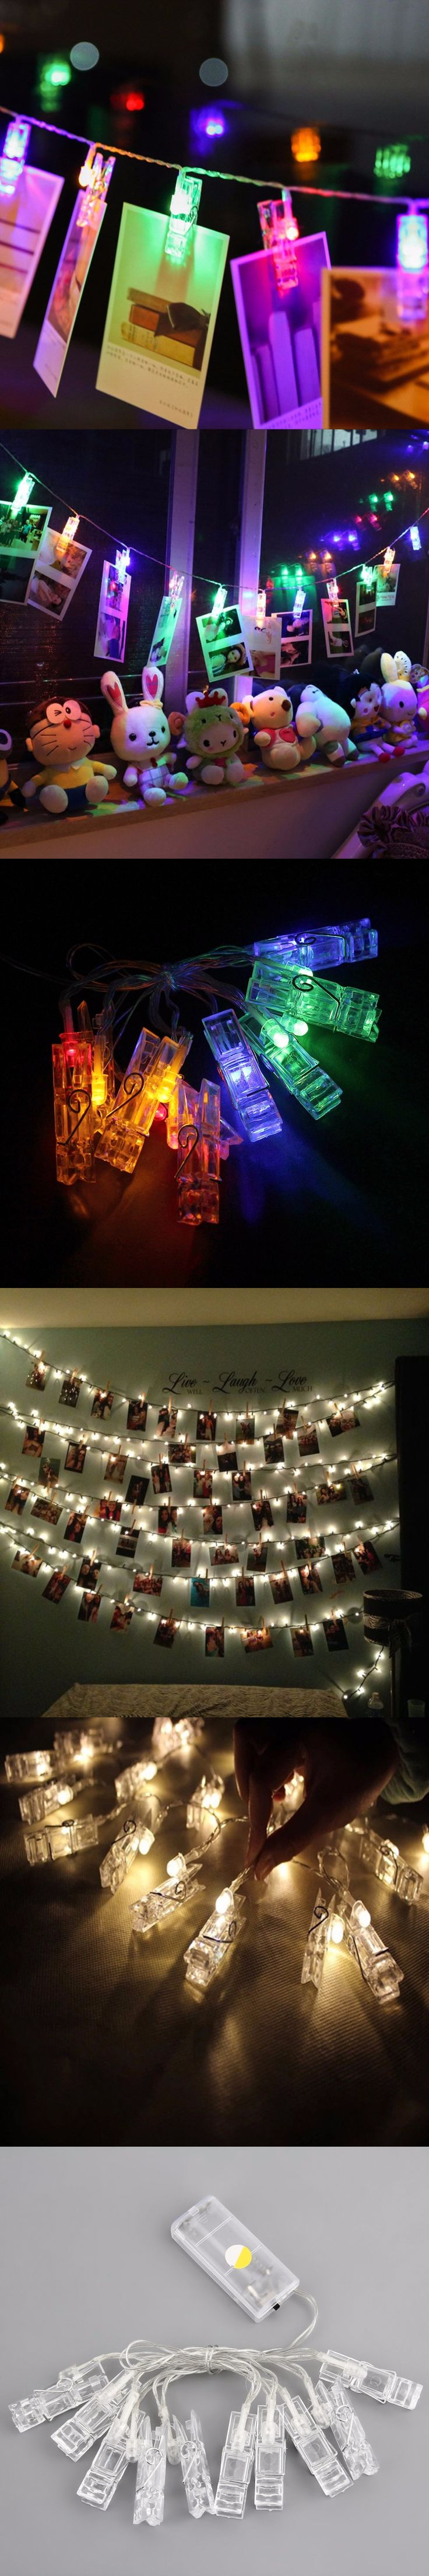 ICOCO 2017 20 LED Card Photo Clip String Lights Battery Christmas Lights Party Wedding Home Bedroom Decoration Fairy lights